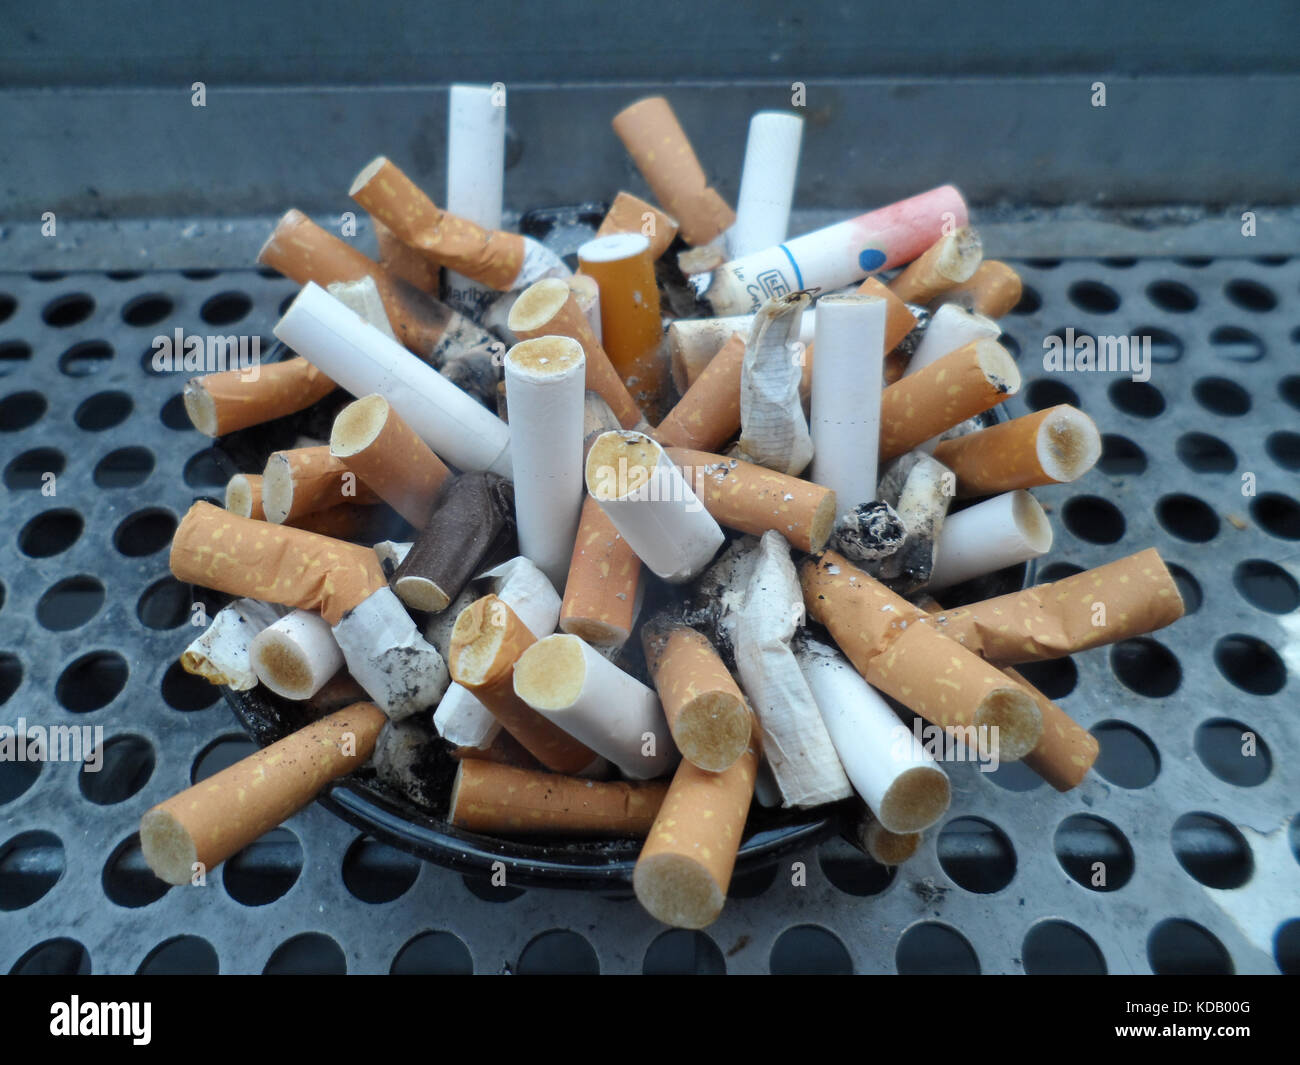 Are Marlboro cigarettes sold in Canada